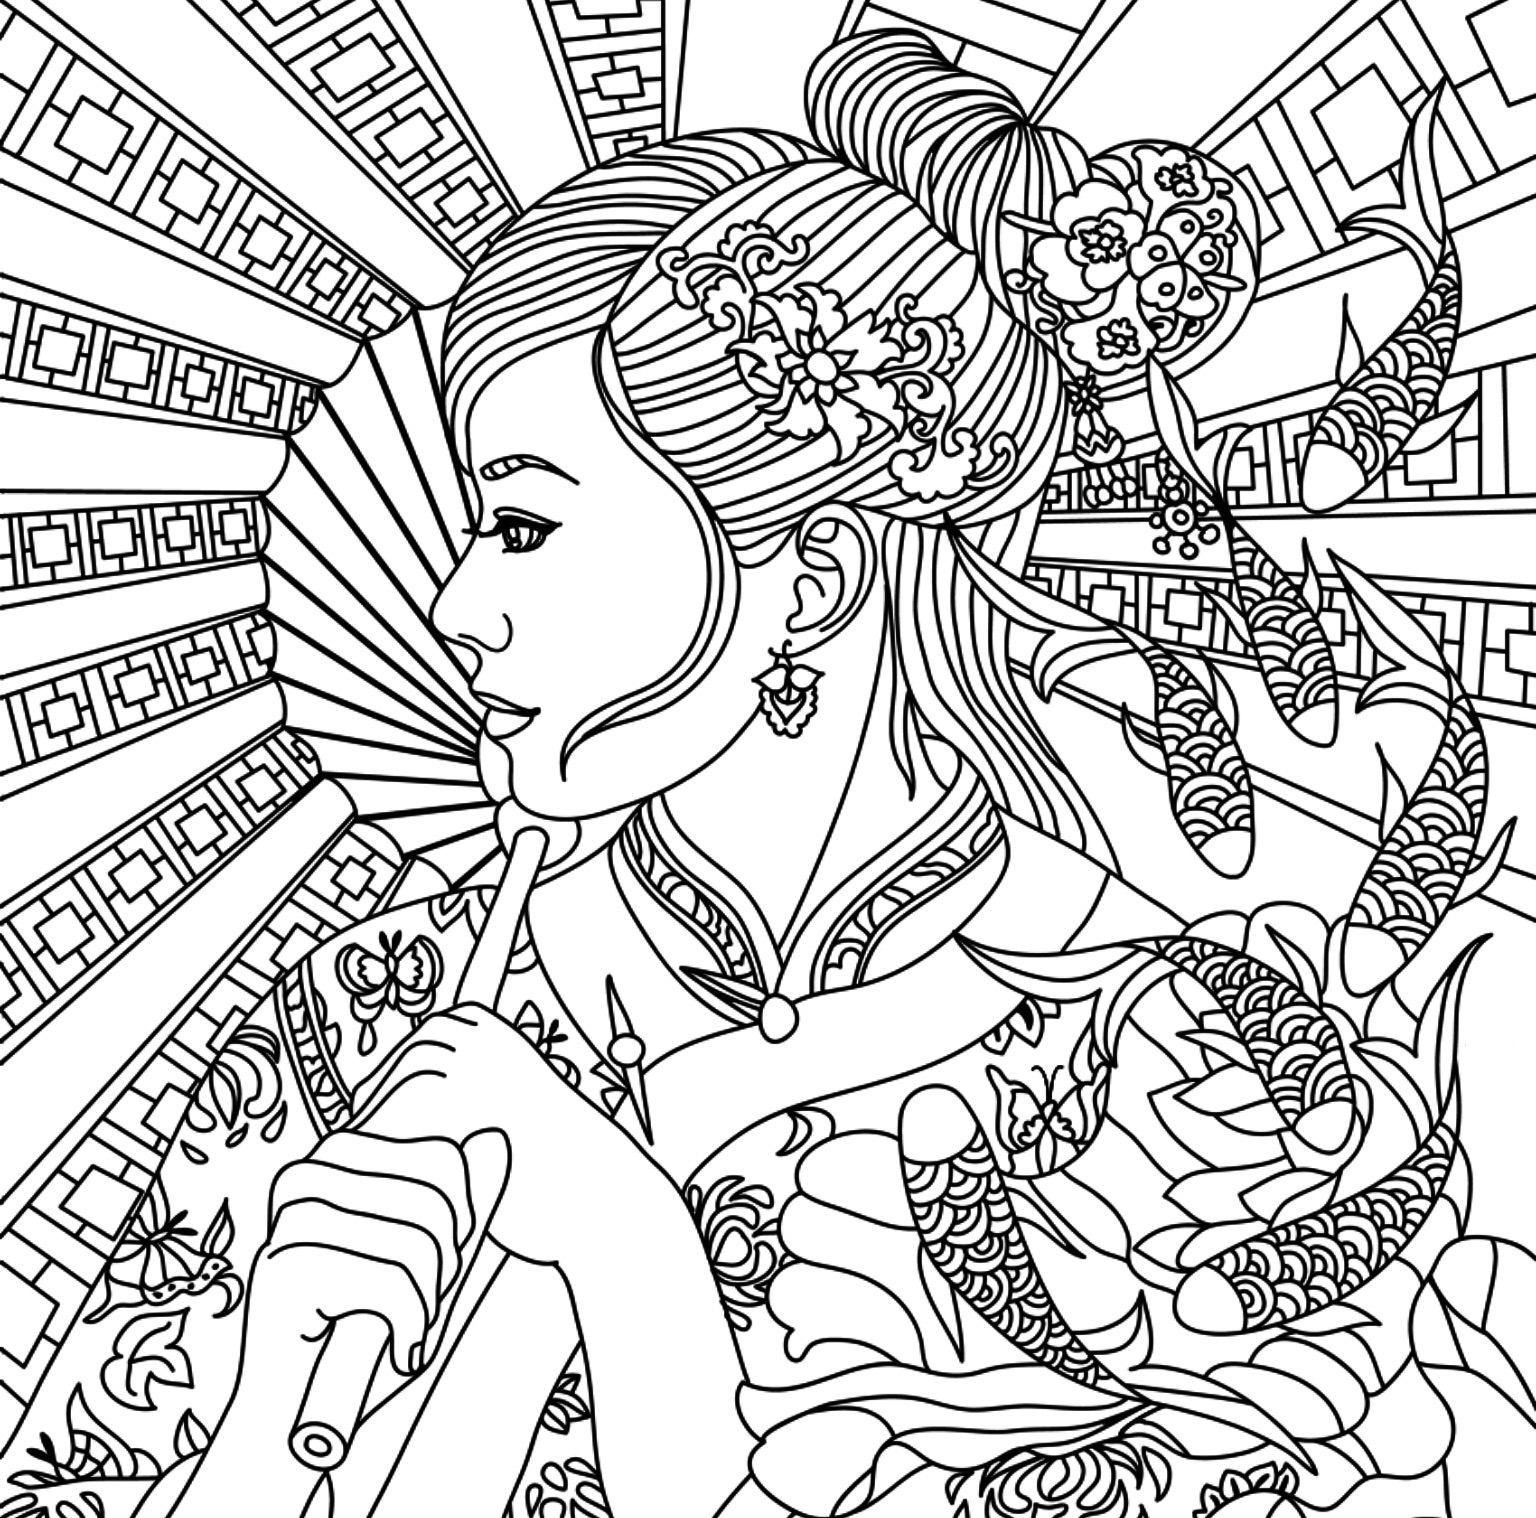 coloring book for adults printable printable abstract pattern adult coloring pages 01 printable book adults for coloring